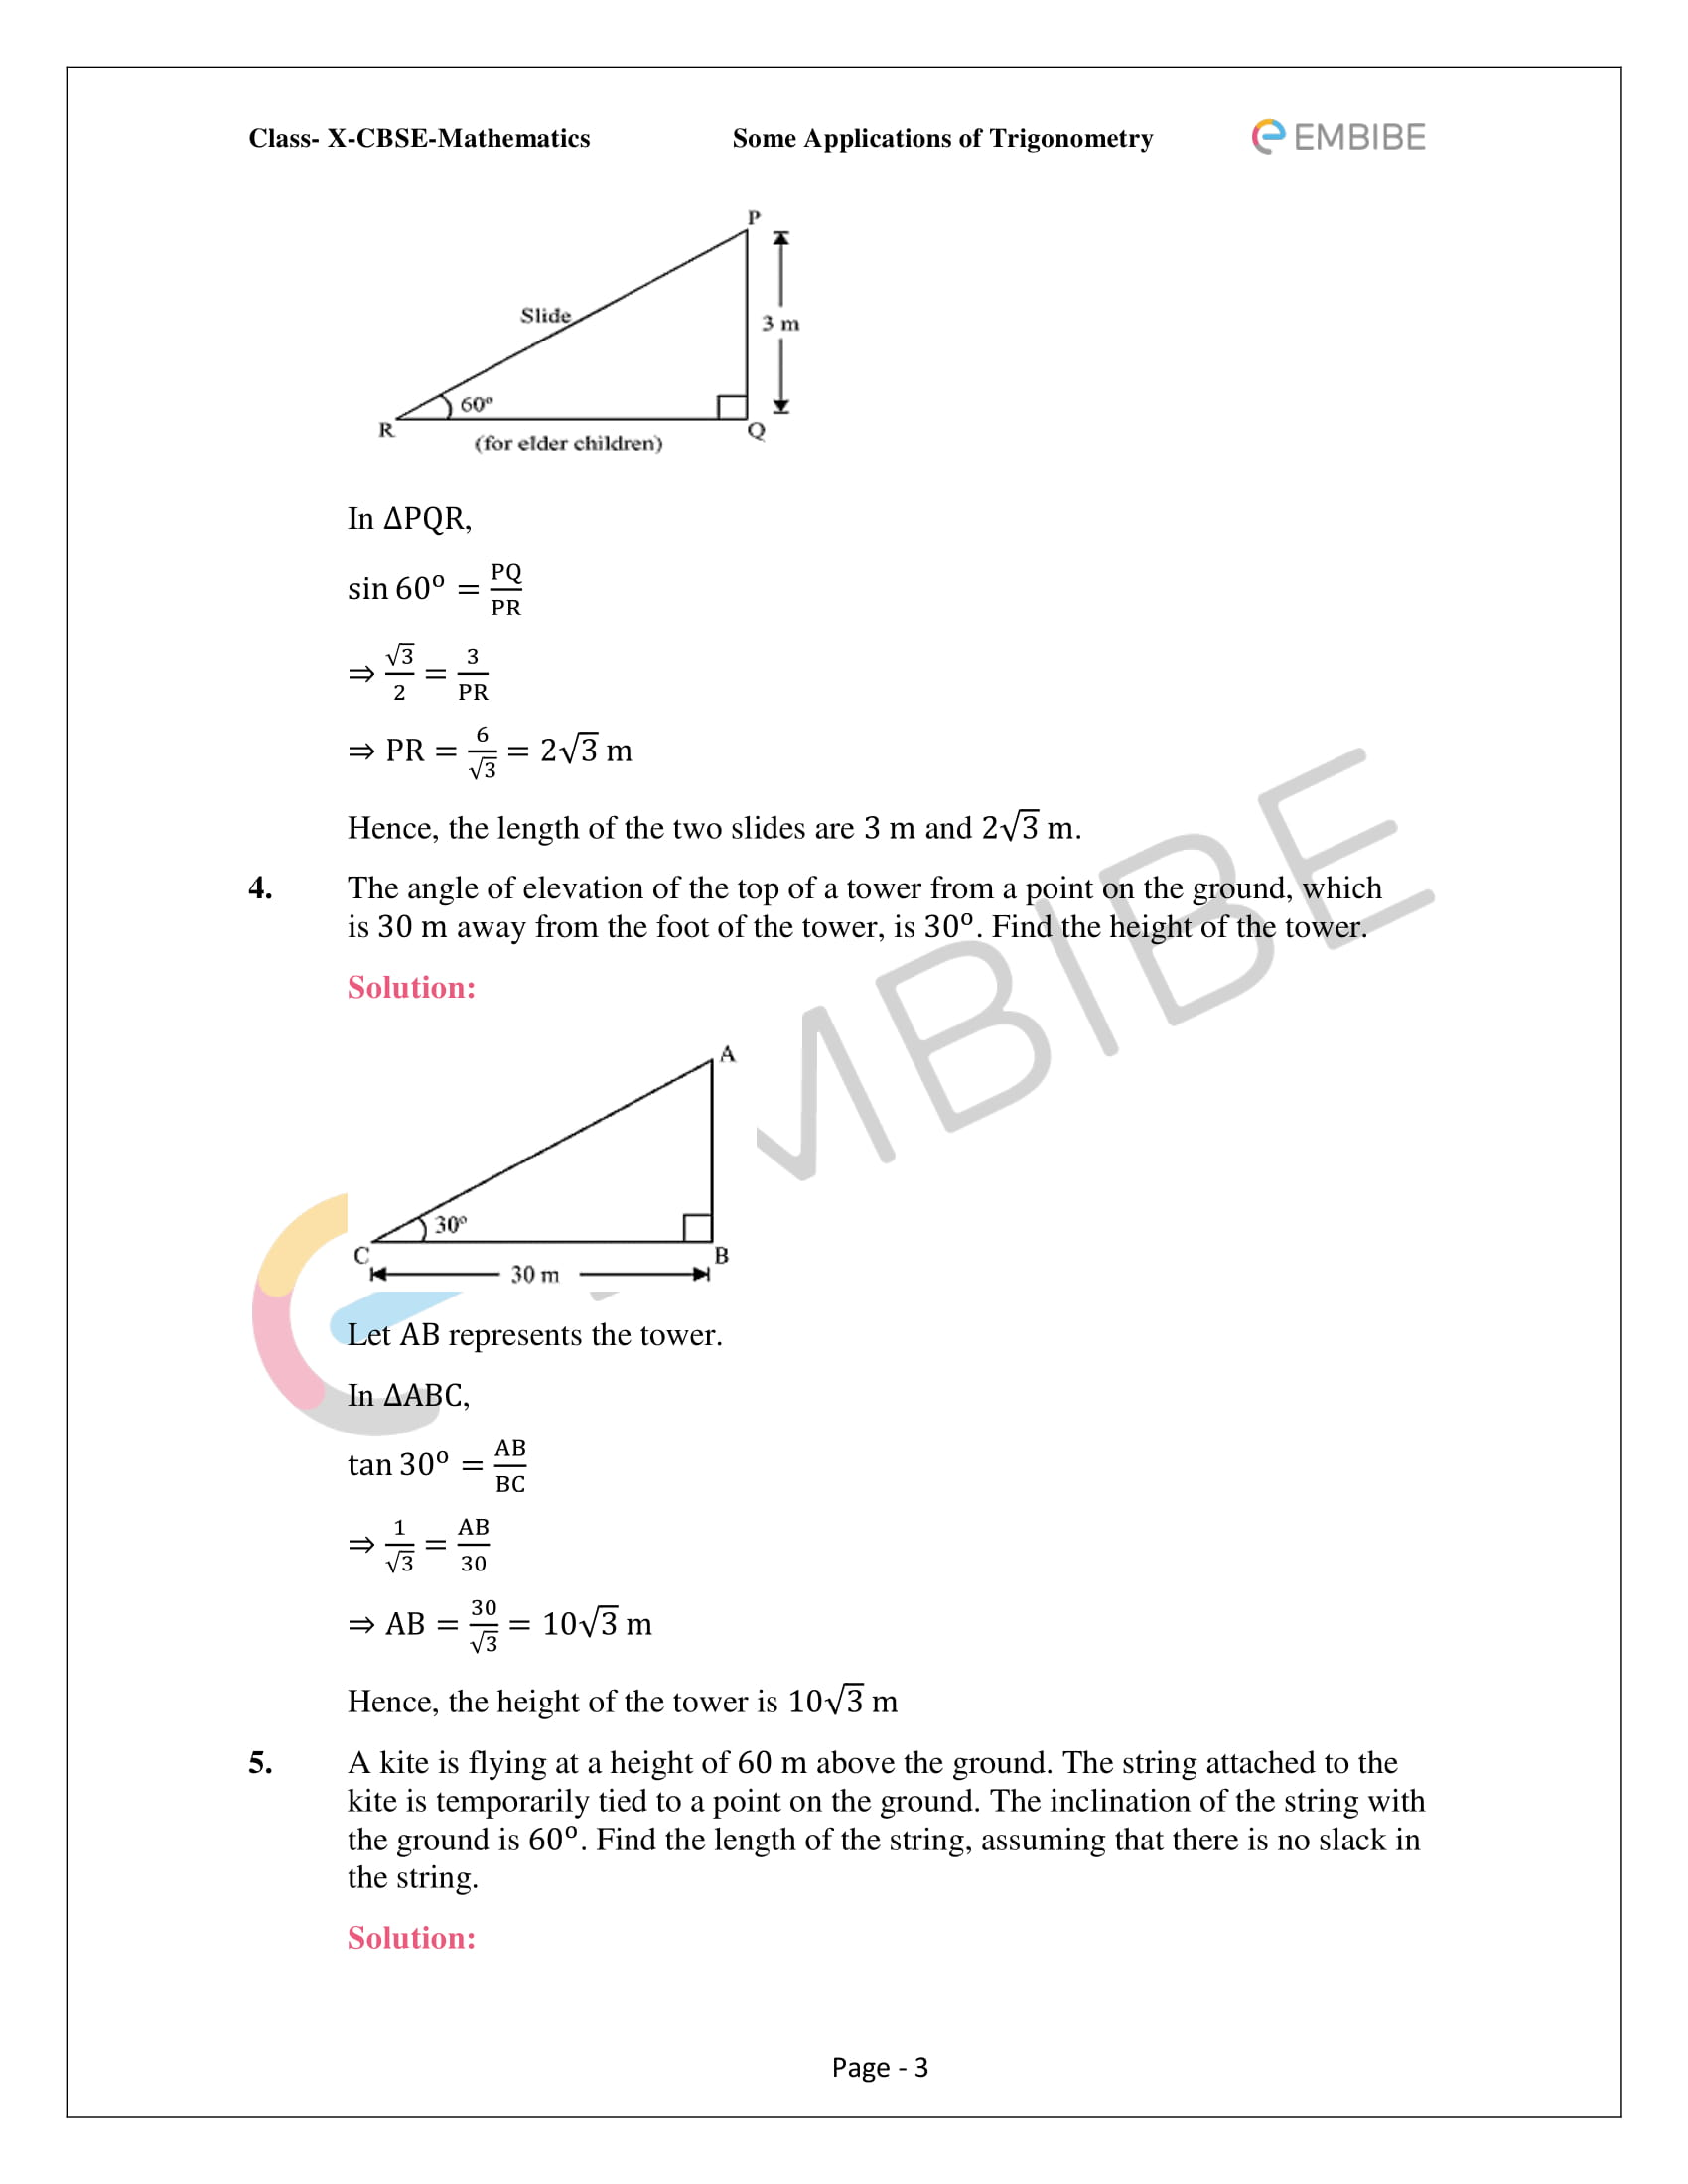 CBSE NCERT Solutions For Class 10 Maths Chapter 9 –Introduction To Trigonometry - 3